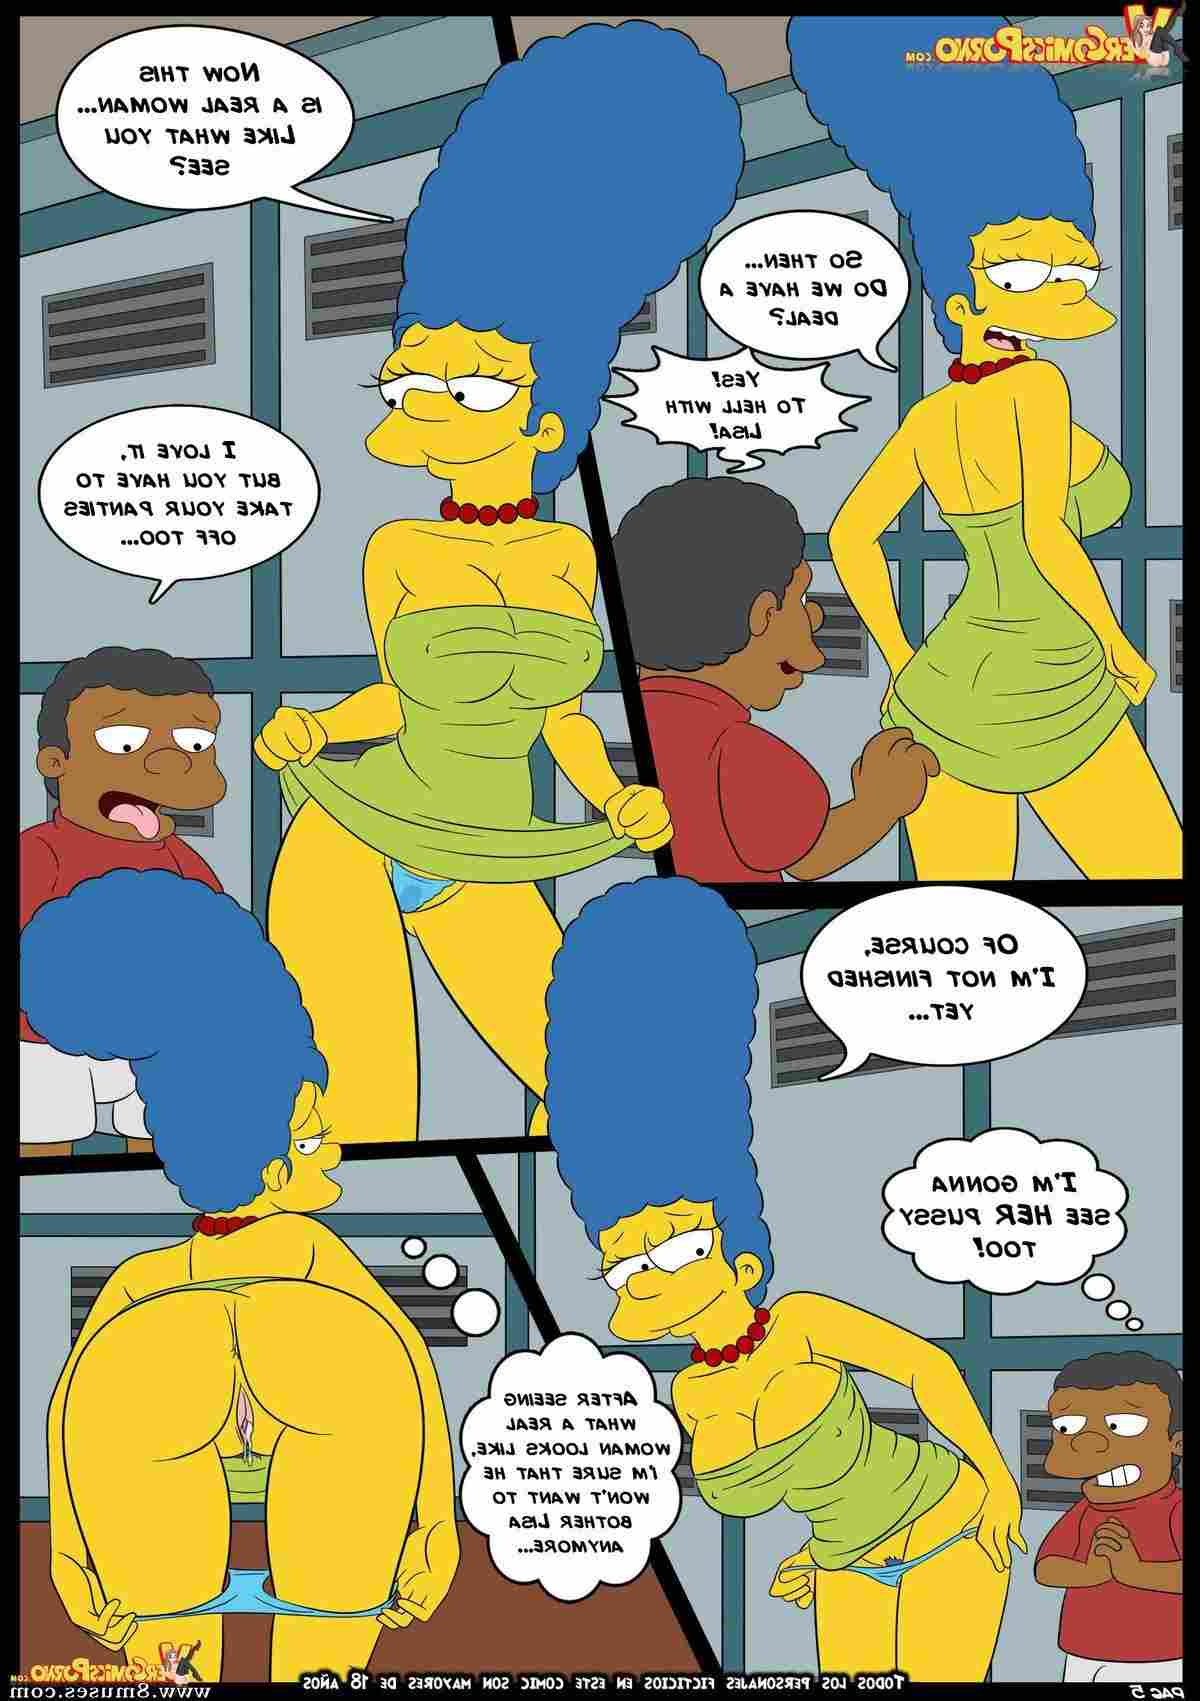 Croc-Comics/The-Simpsons-Love-for-the-Bully The_Simpsons_-_Love_for_the_Bully__8muses_-_Sex_and_Porn_Comics_6.jpg